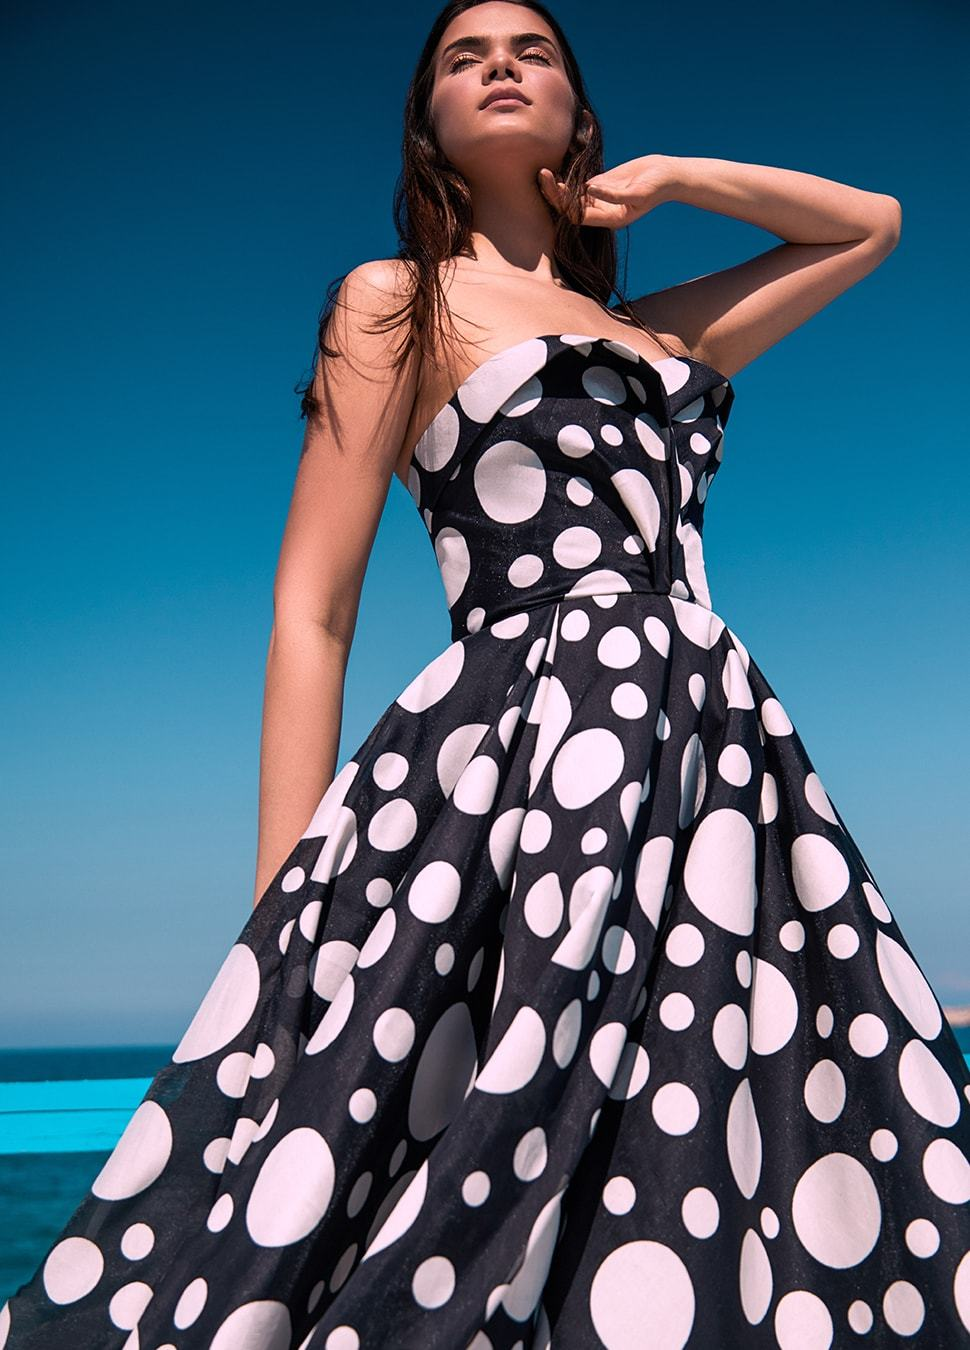 POLKA DOT BLACK AND WHITE DRESS